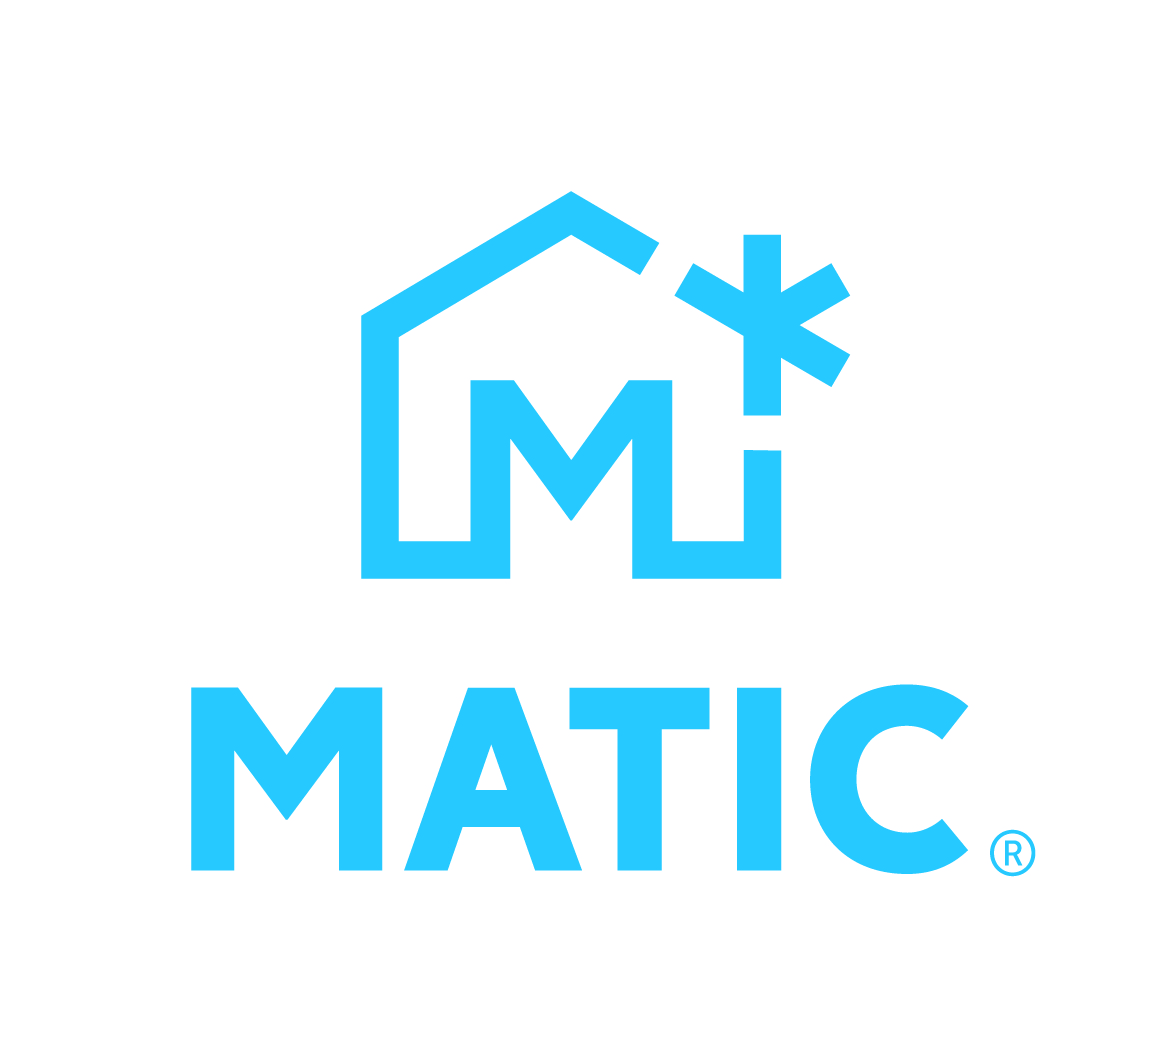 Matic Services Help Center home page